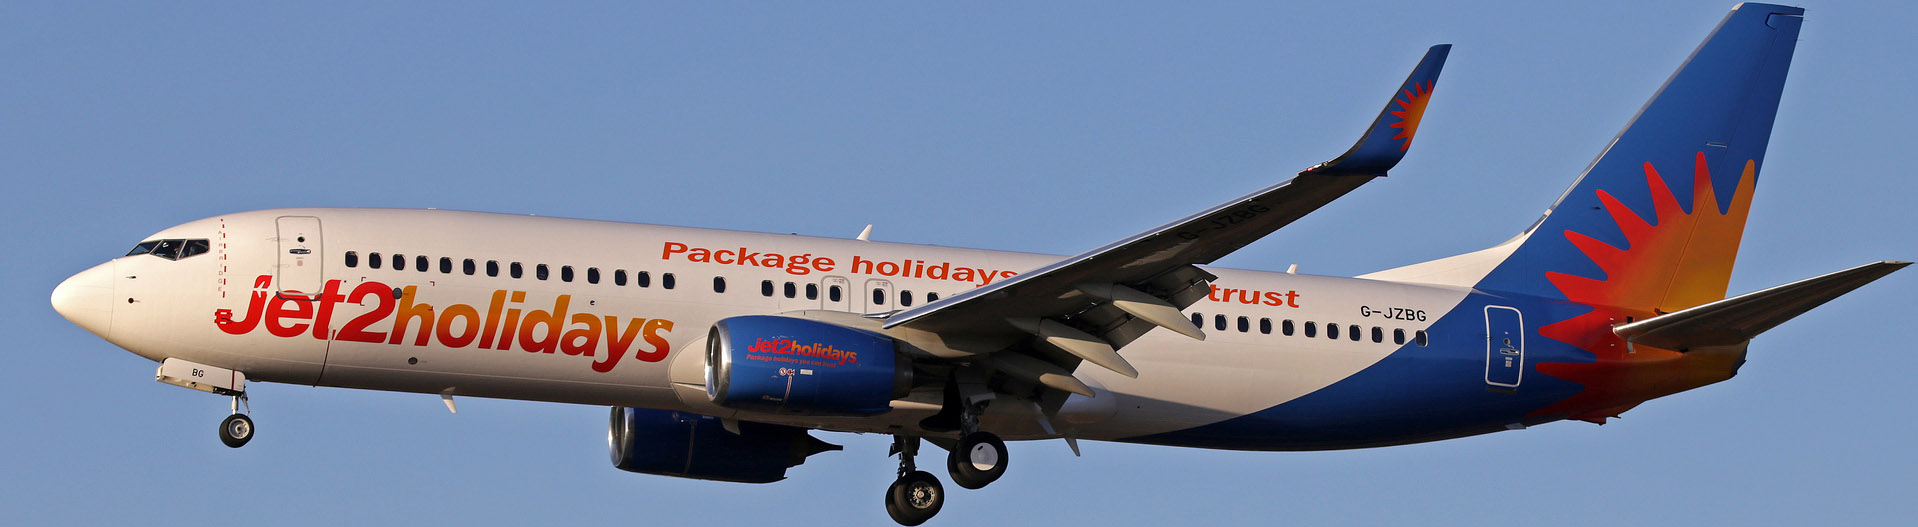 Jet2.com Boeing 737-800NG on Final Approach.